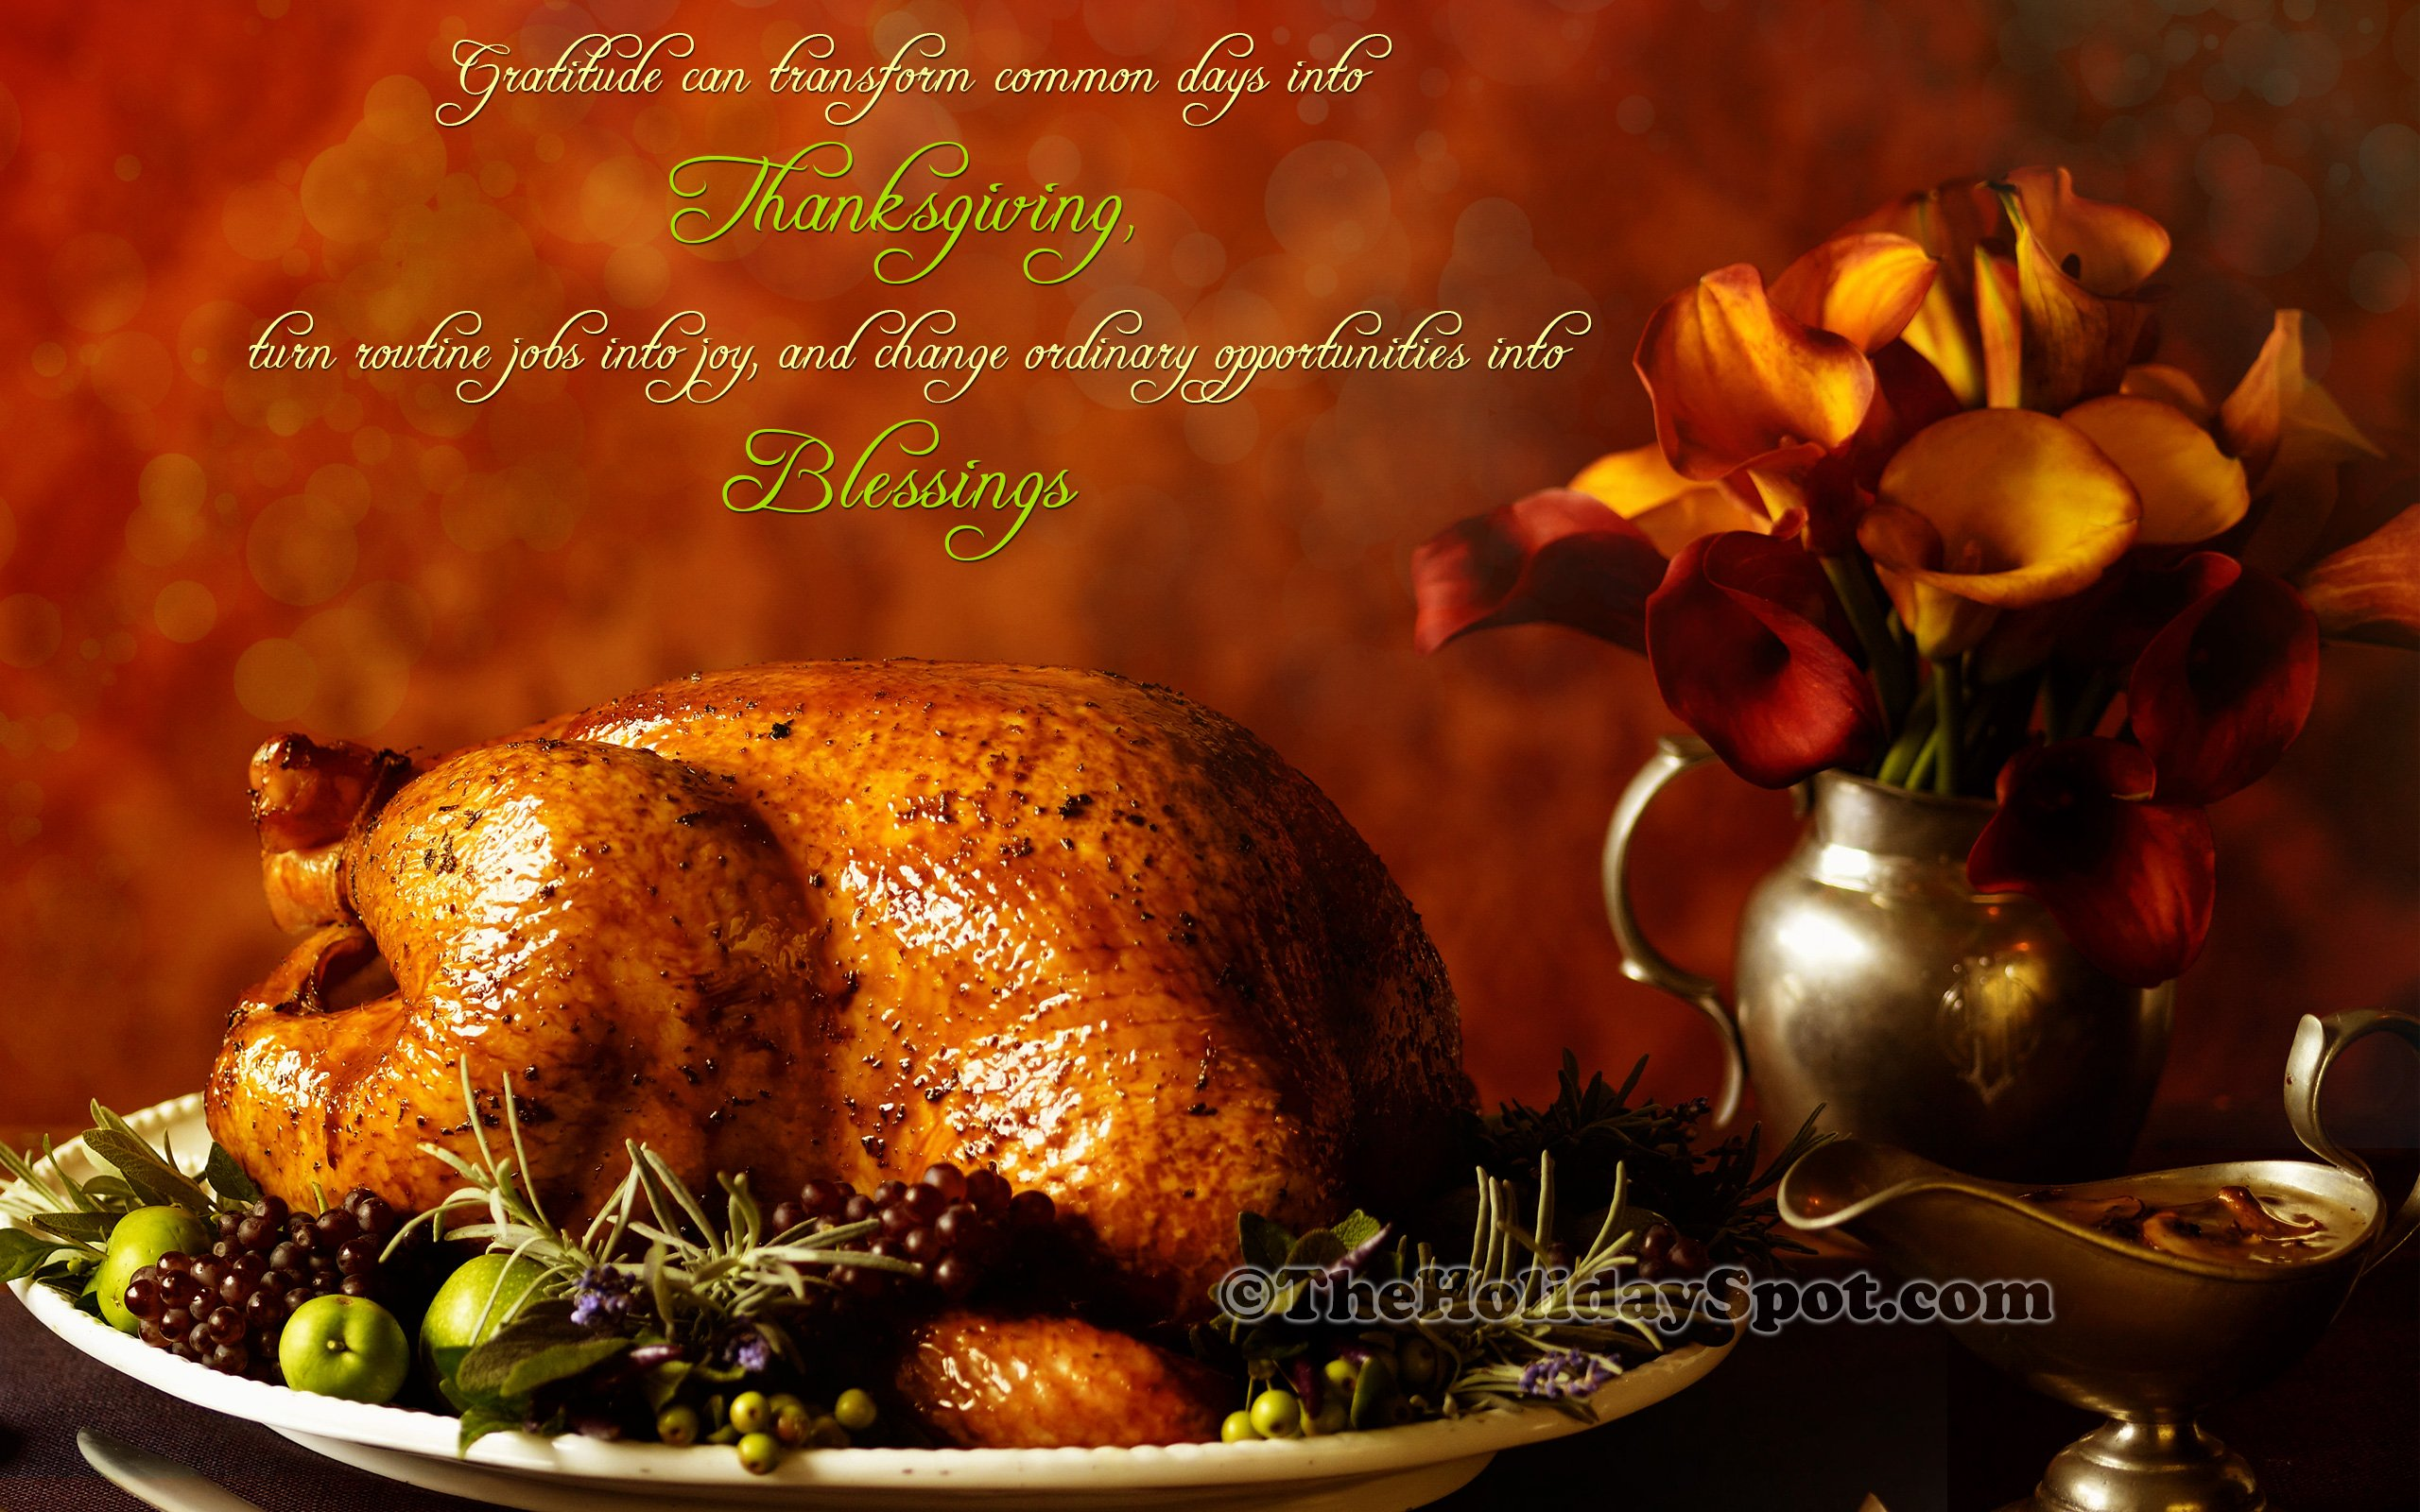 Thanksgiving Wallpapers HD Happy Thanksgiving Wallpaper Desktop 2560x1600